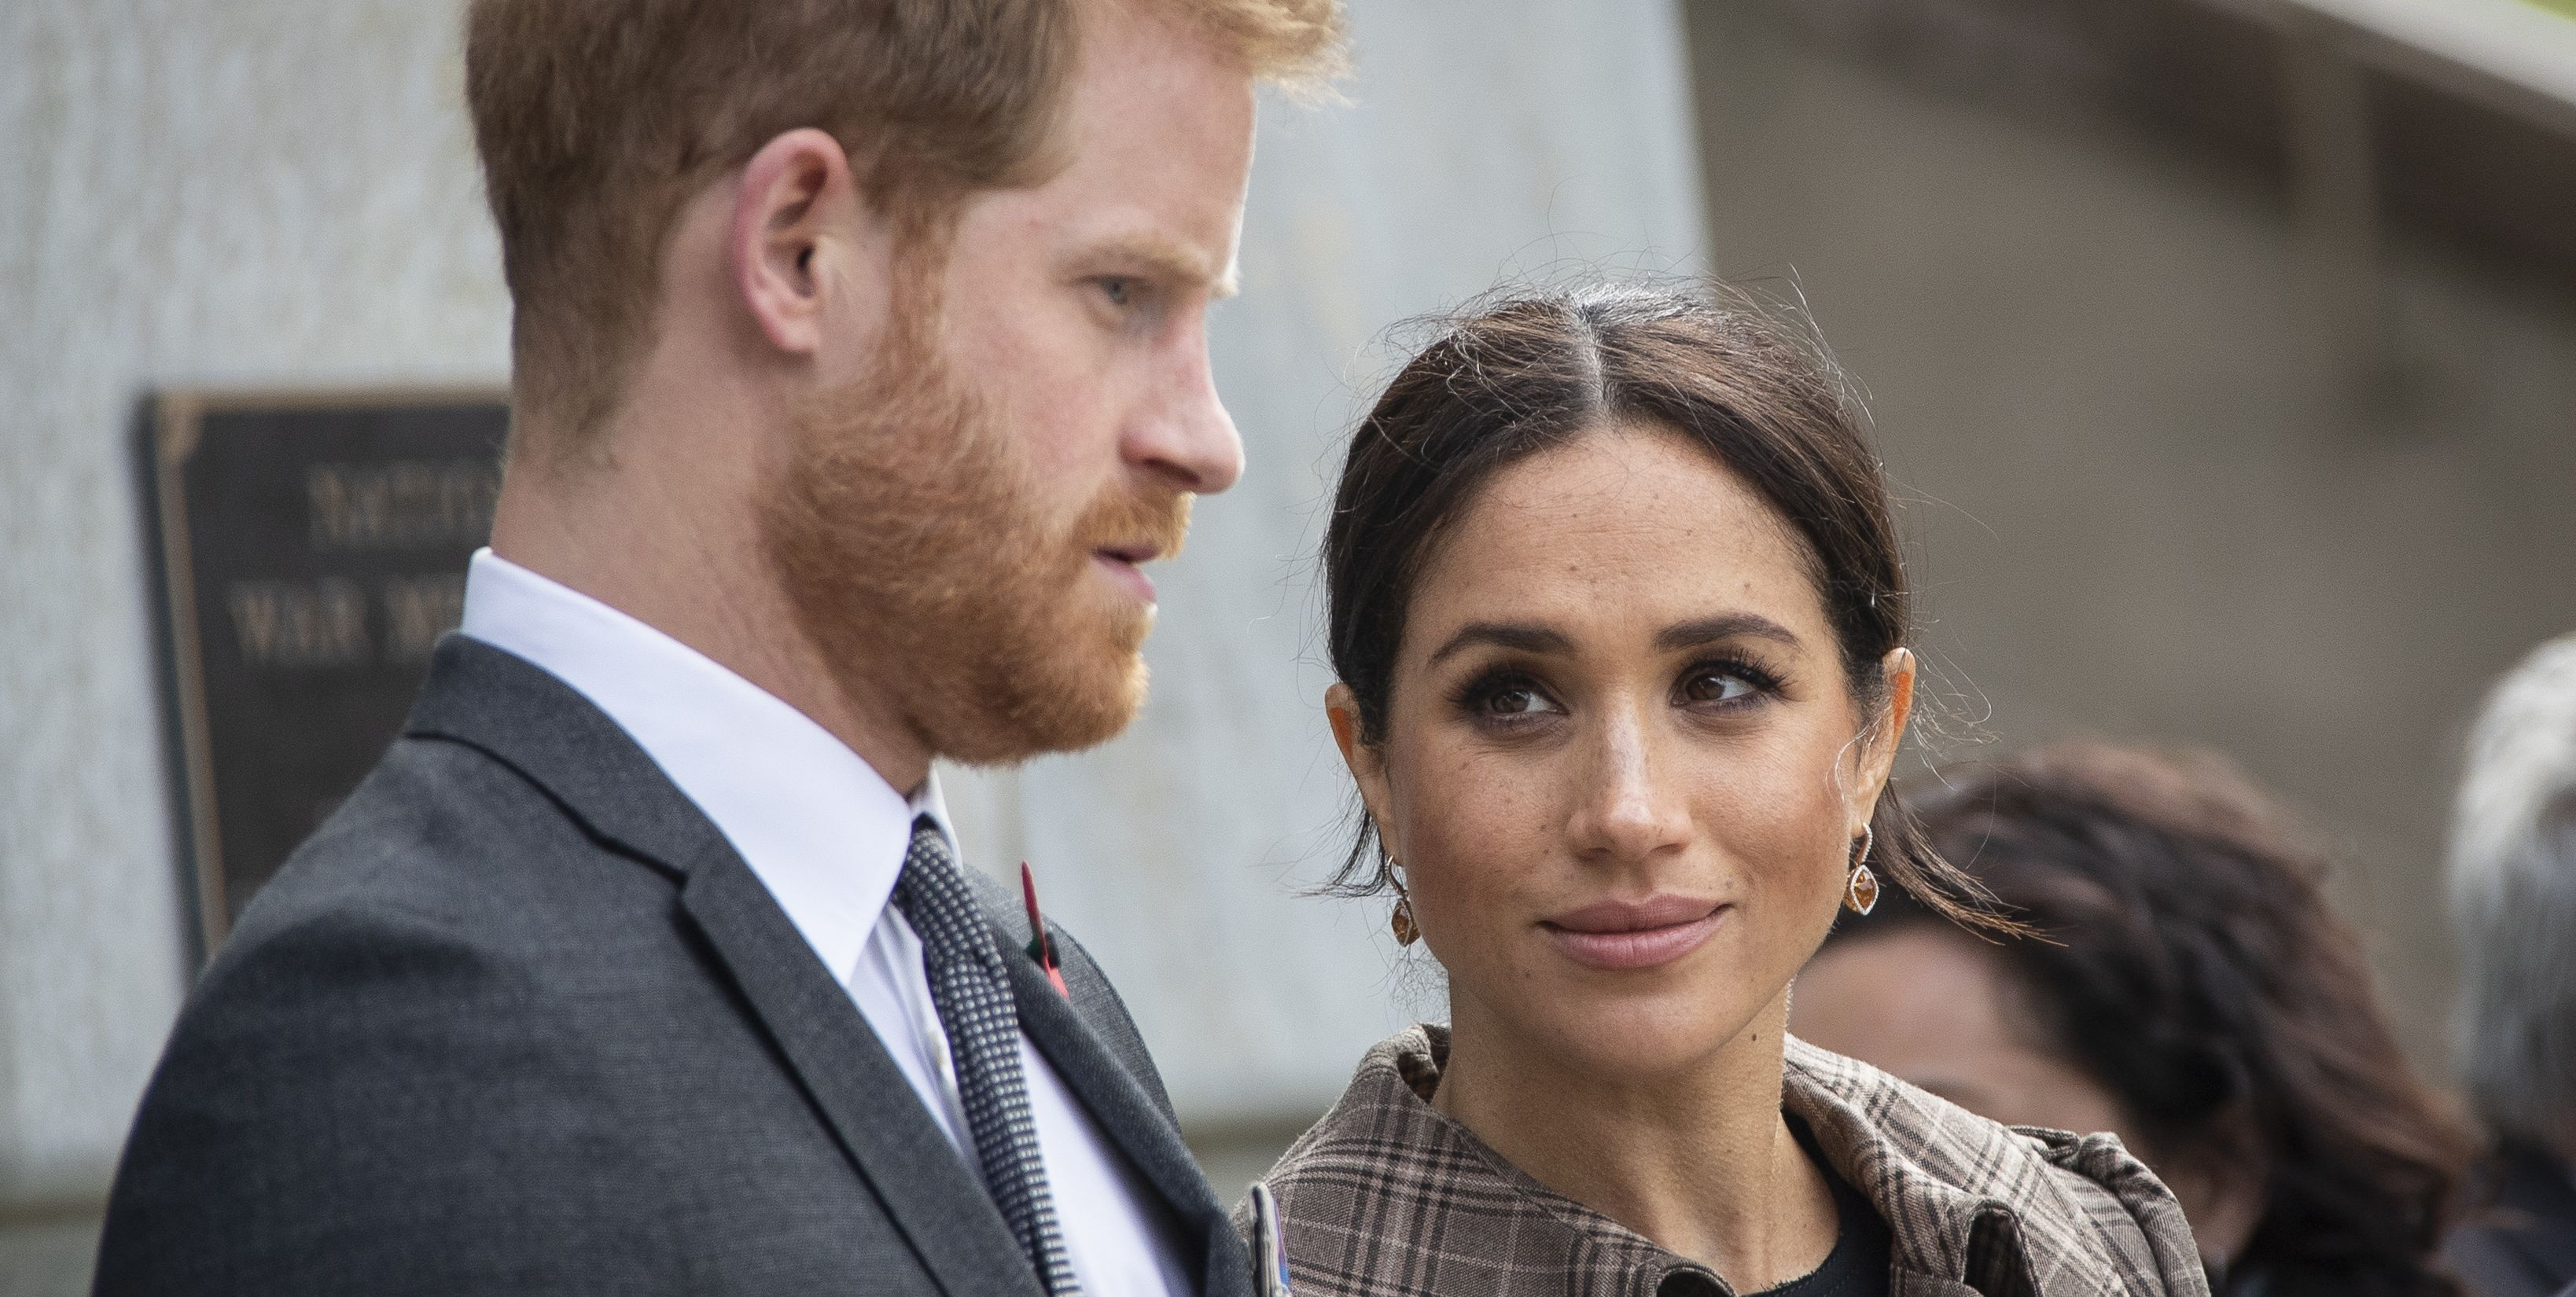 Meghan Markle and Prince Harry's Relationship Is Reportedly Under 'Pressure' Because of Tabloids' Feud Stories